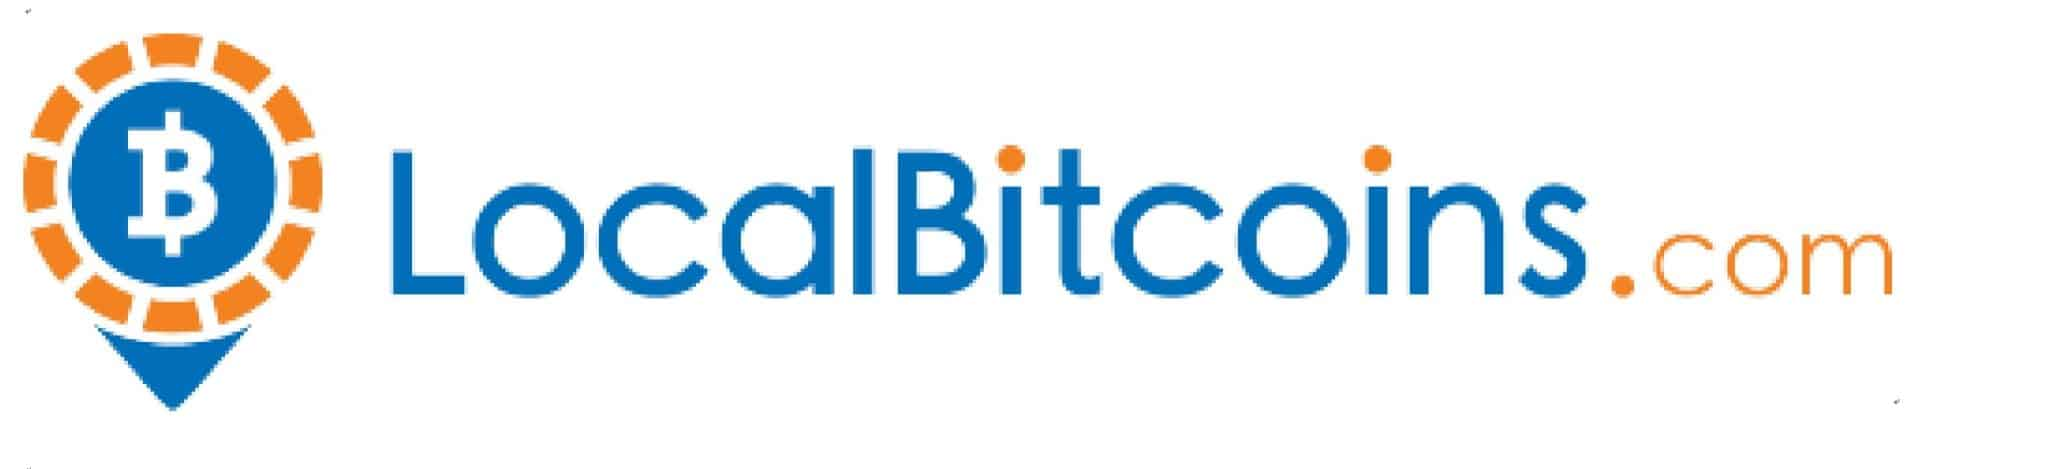 localbitcoins platform for cryptocurrencies